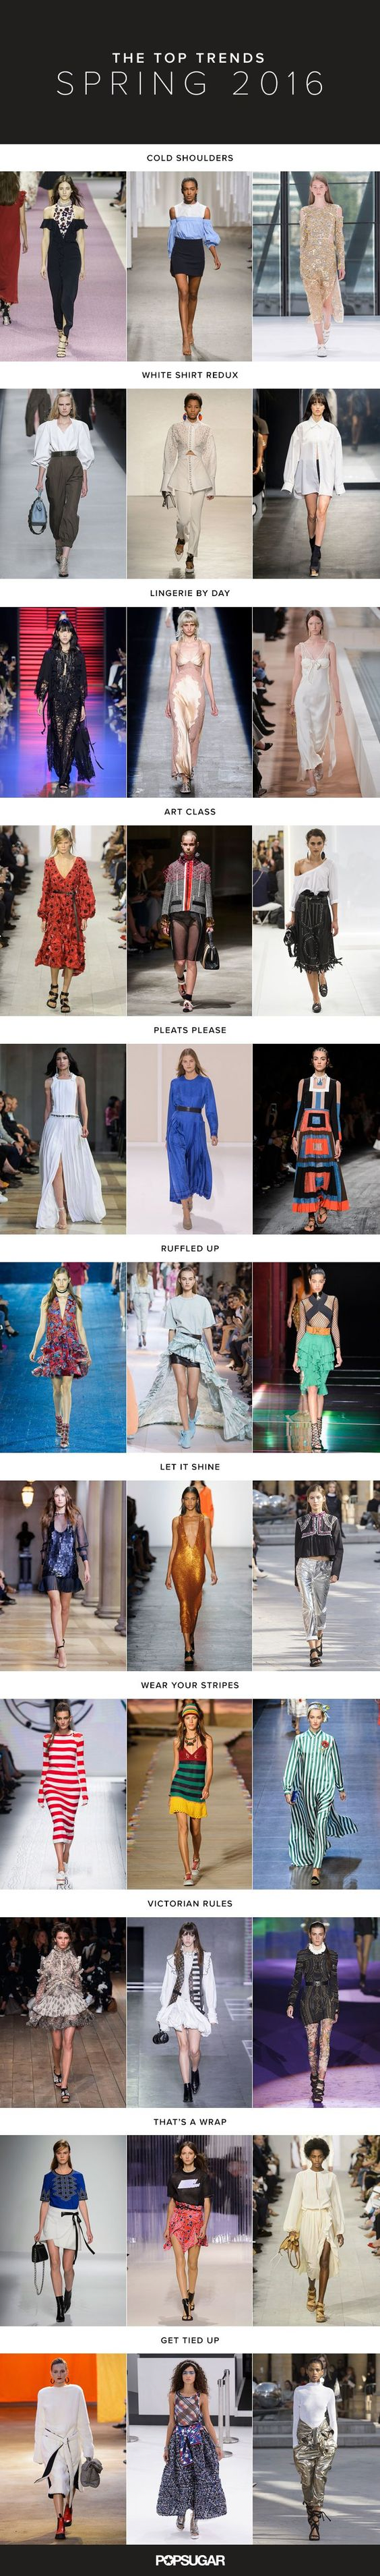 All the trends you need to know for Spring 2016: